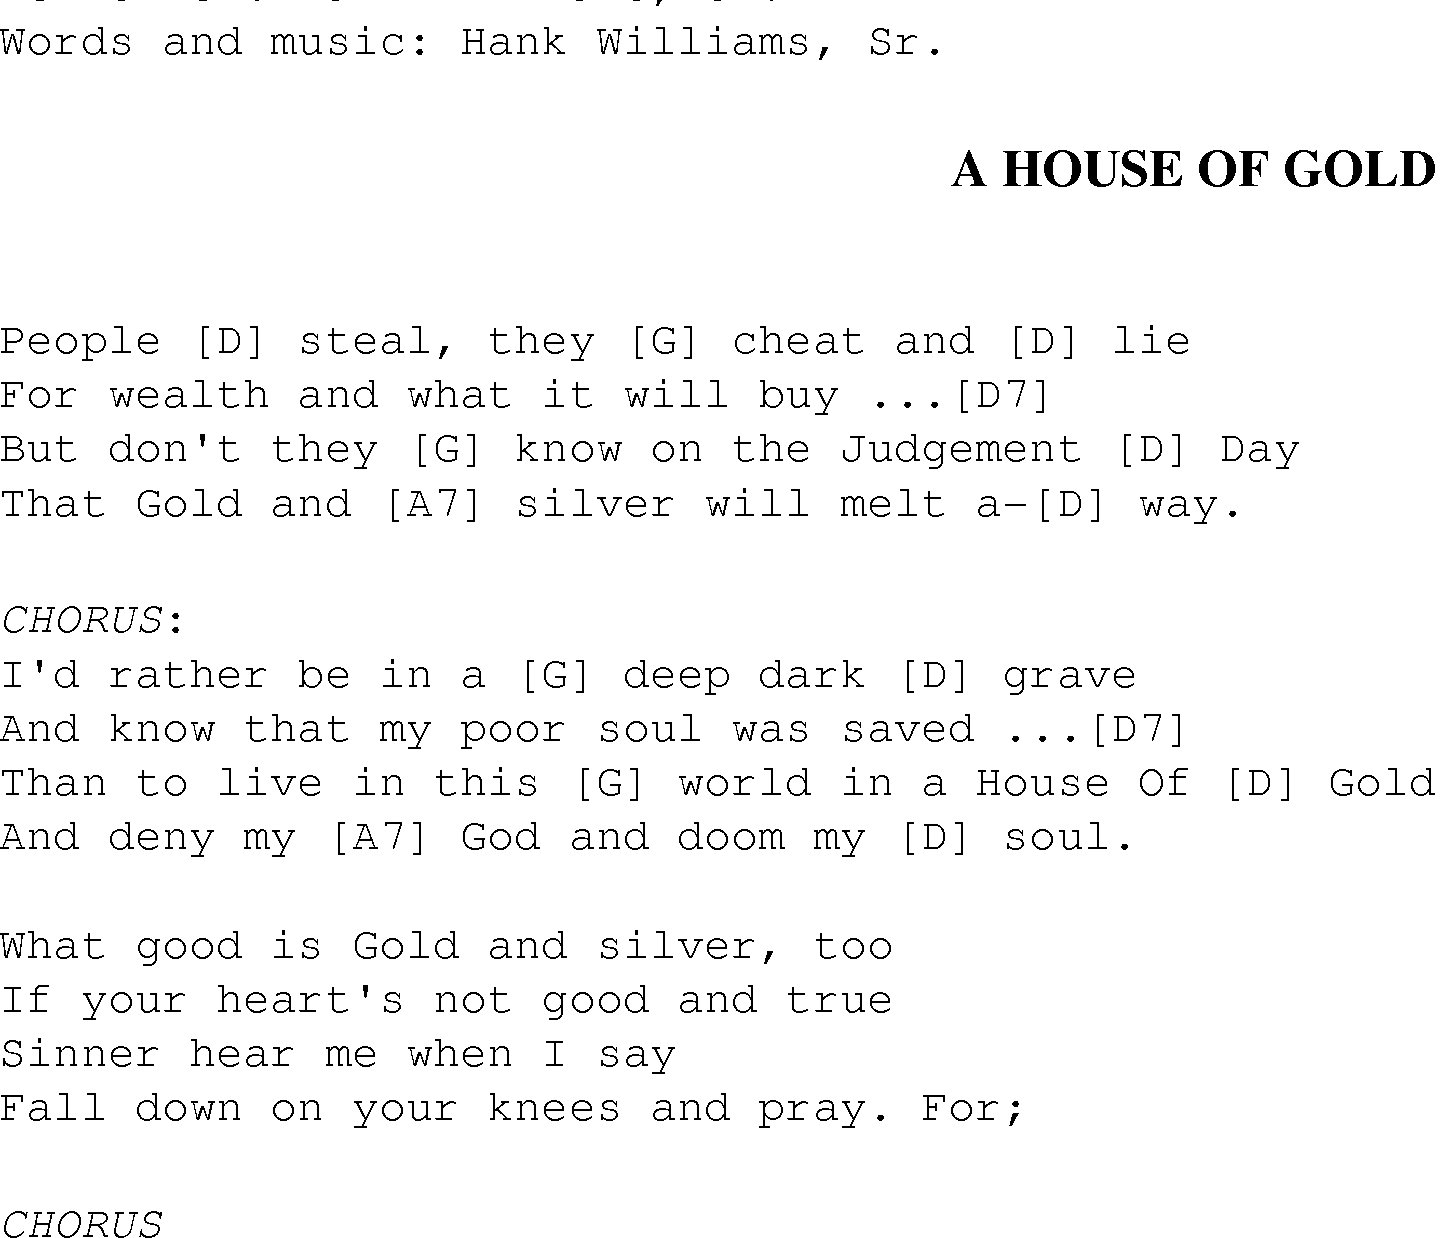 A house of gold christian gospel song lyrics and chords gospel song ahouseofgold lyrics and chords hexwebz Gallery